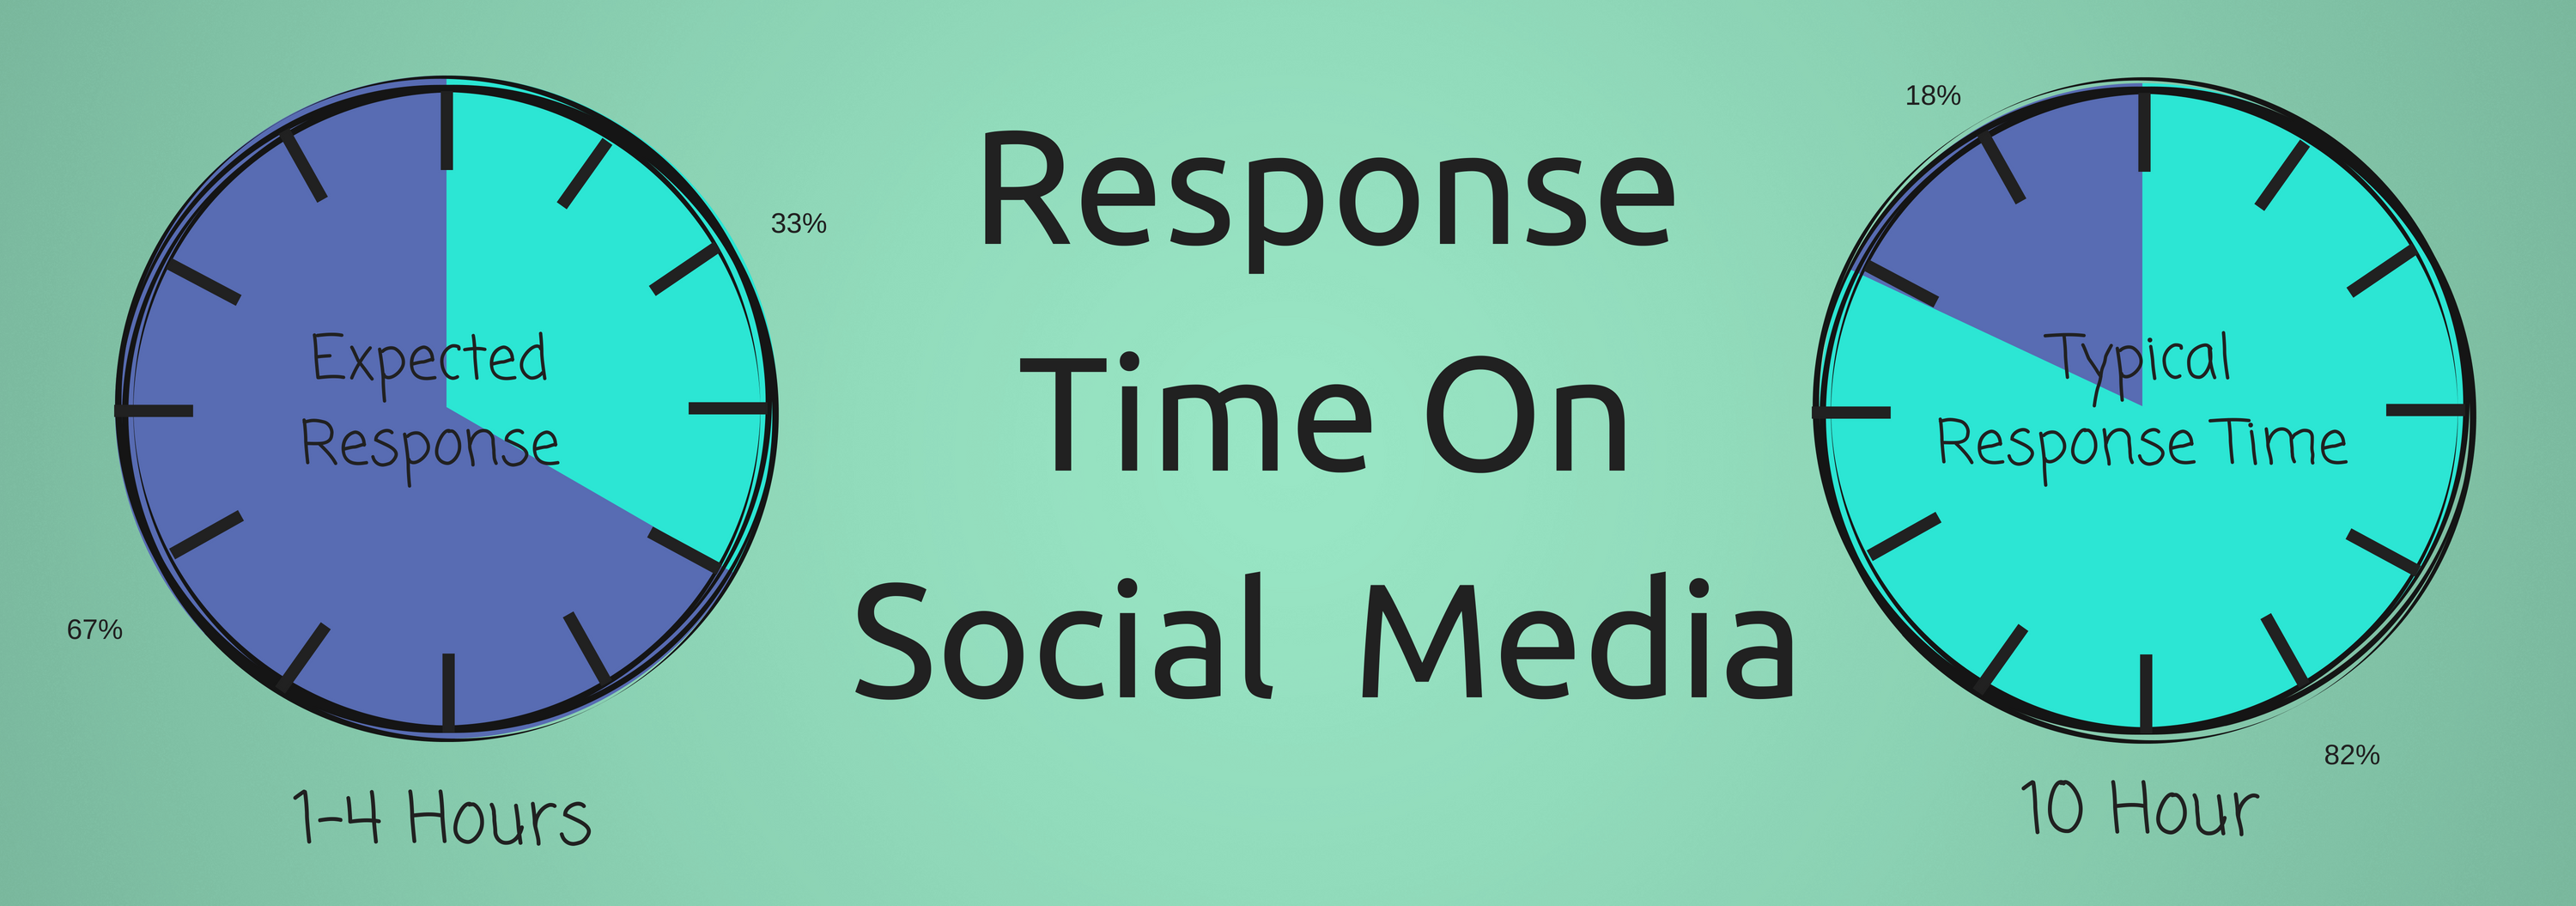 Response Time Social Media Infographic